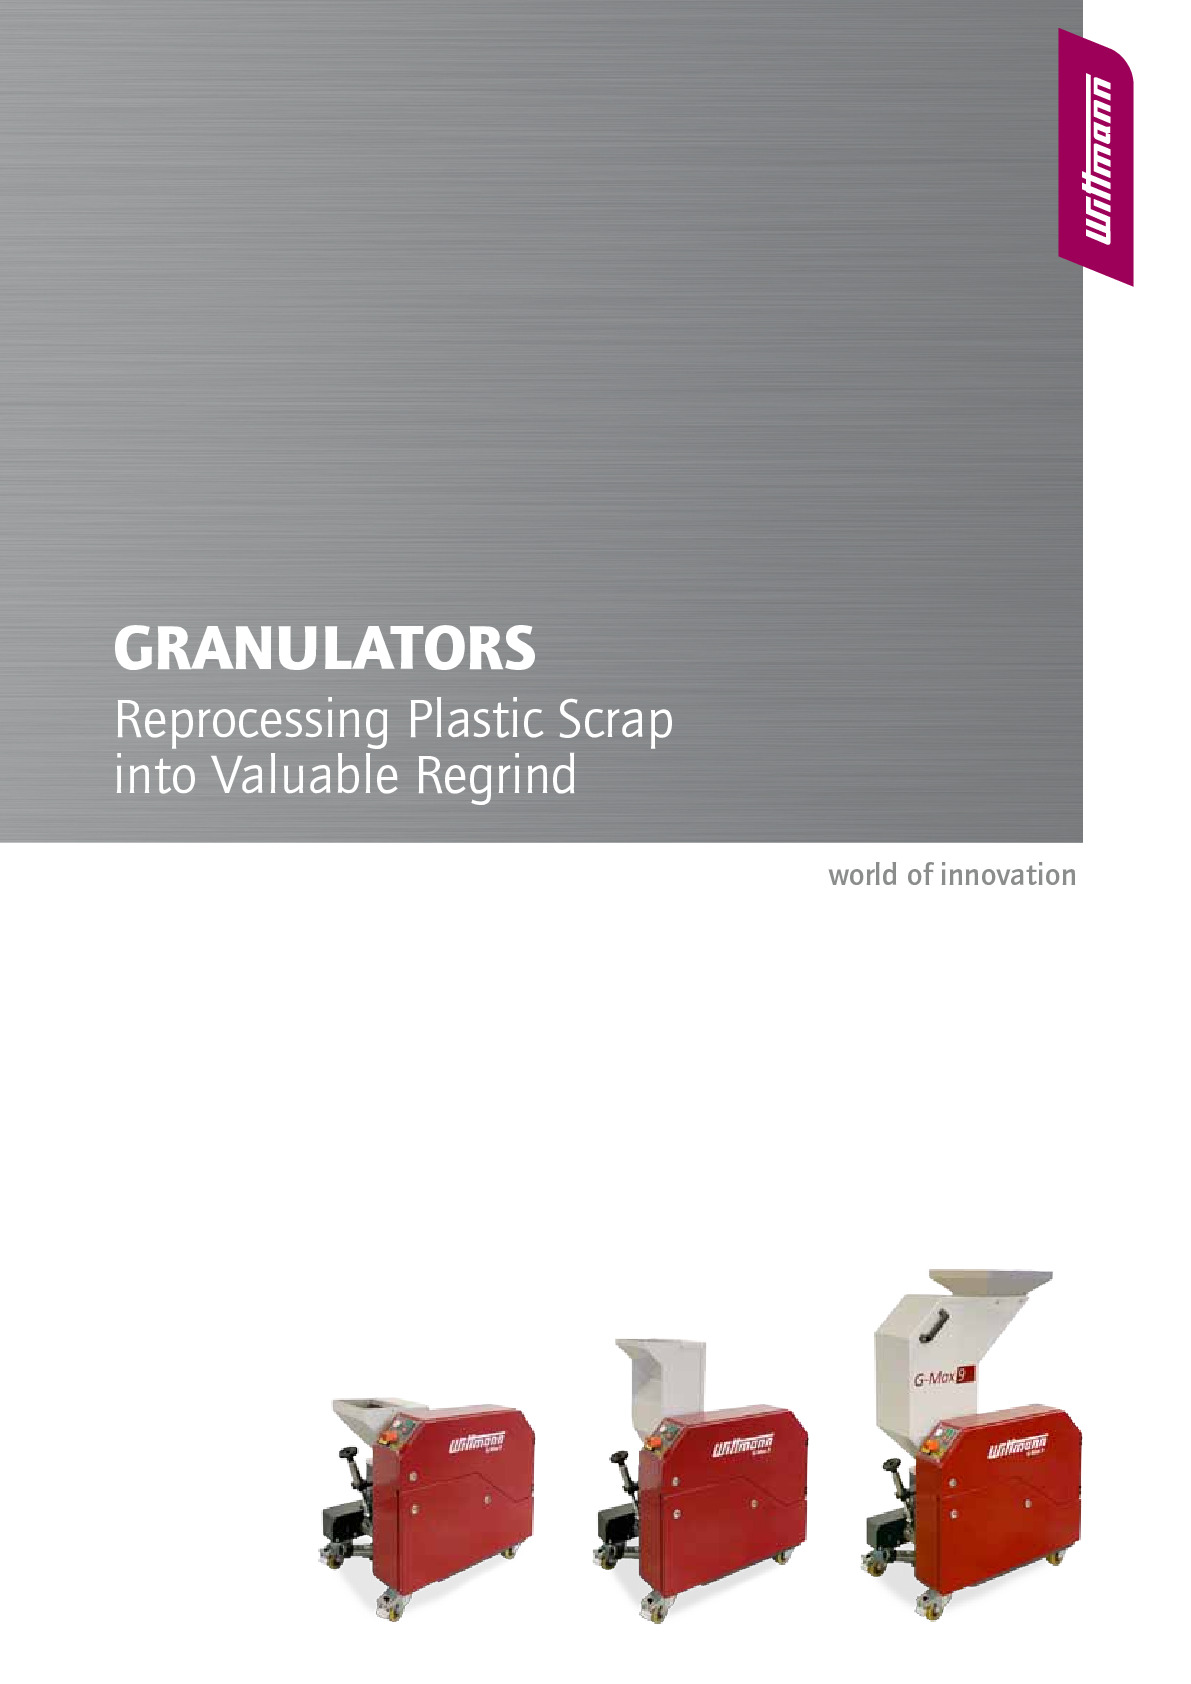 granulators_english_2020-10_lowres